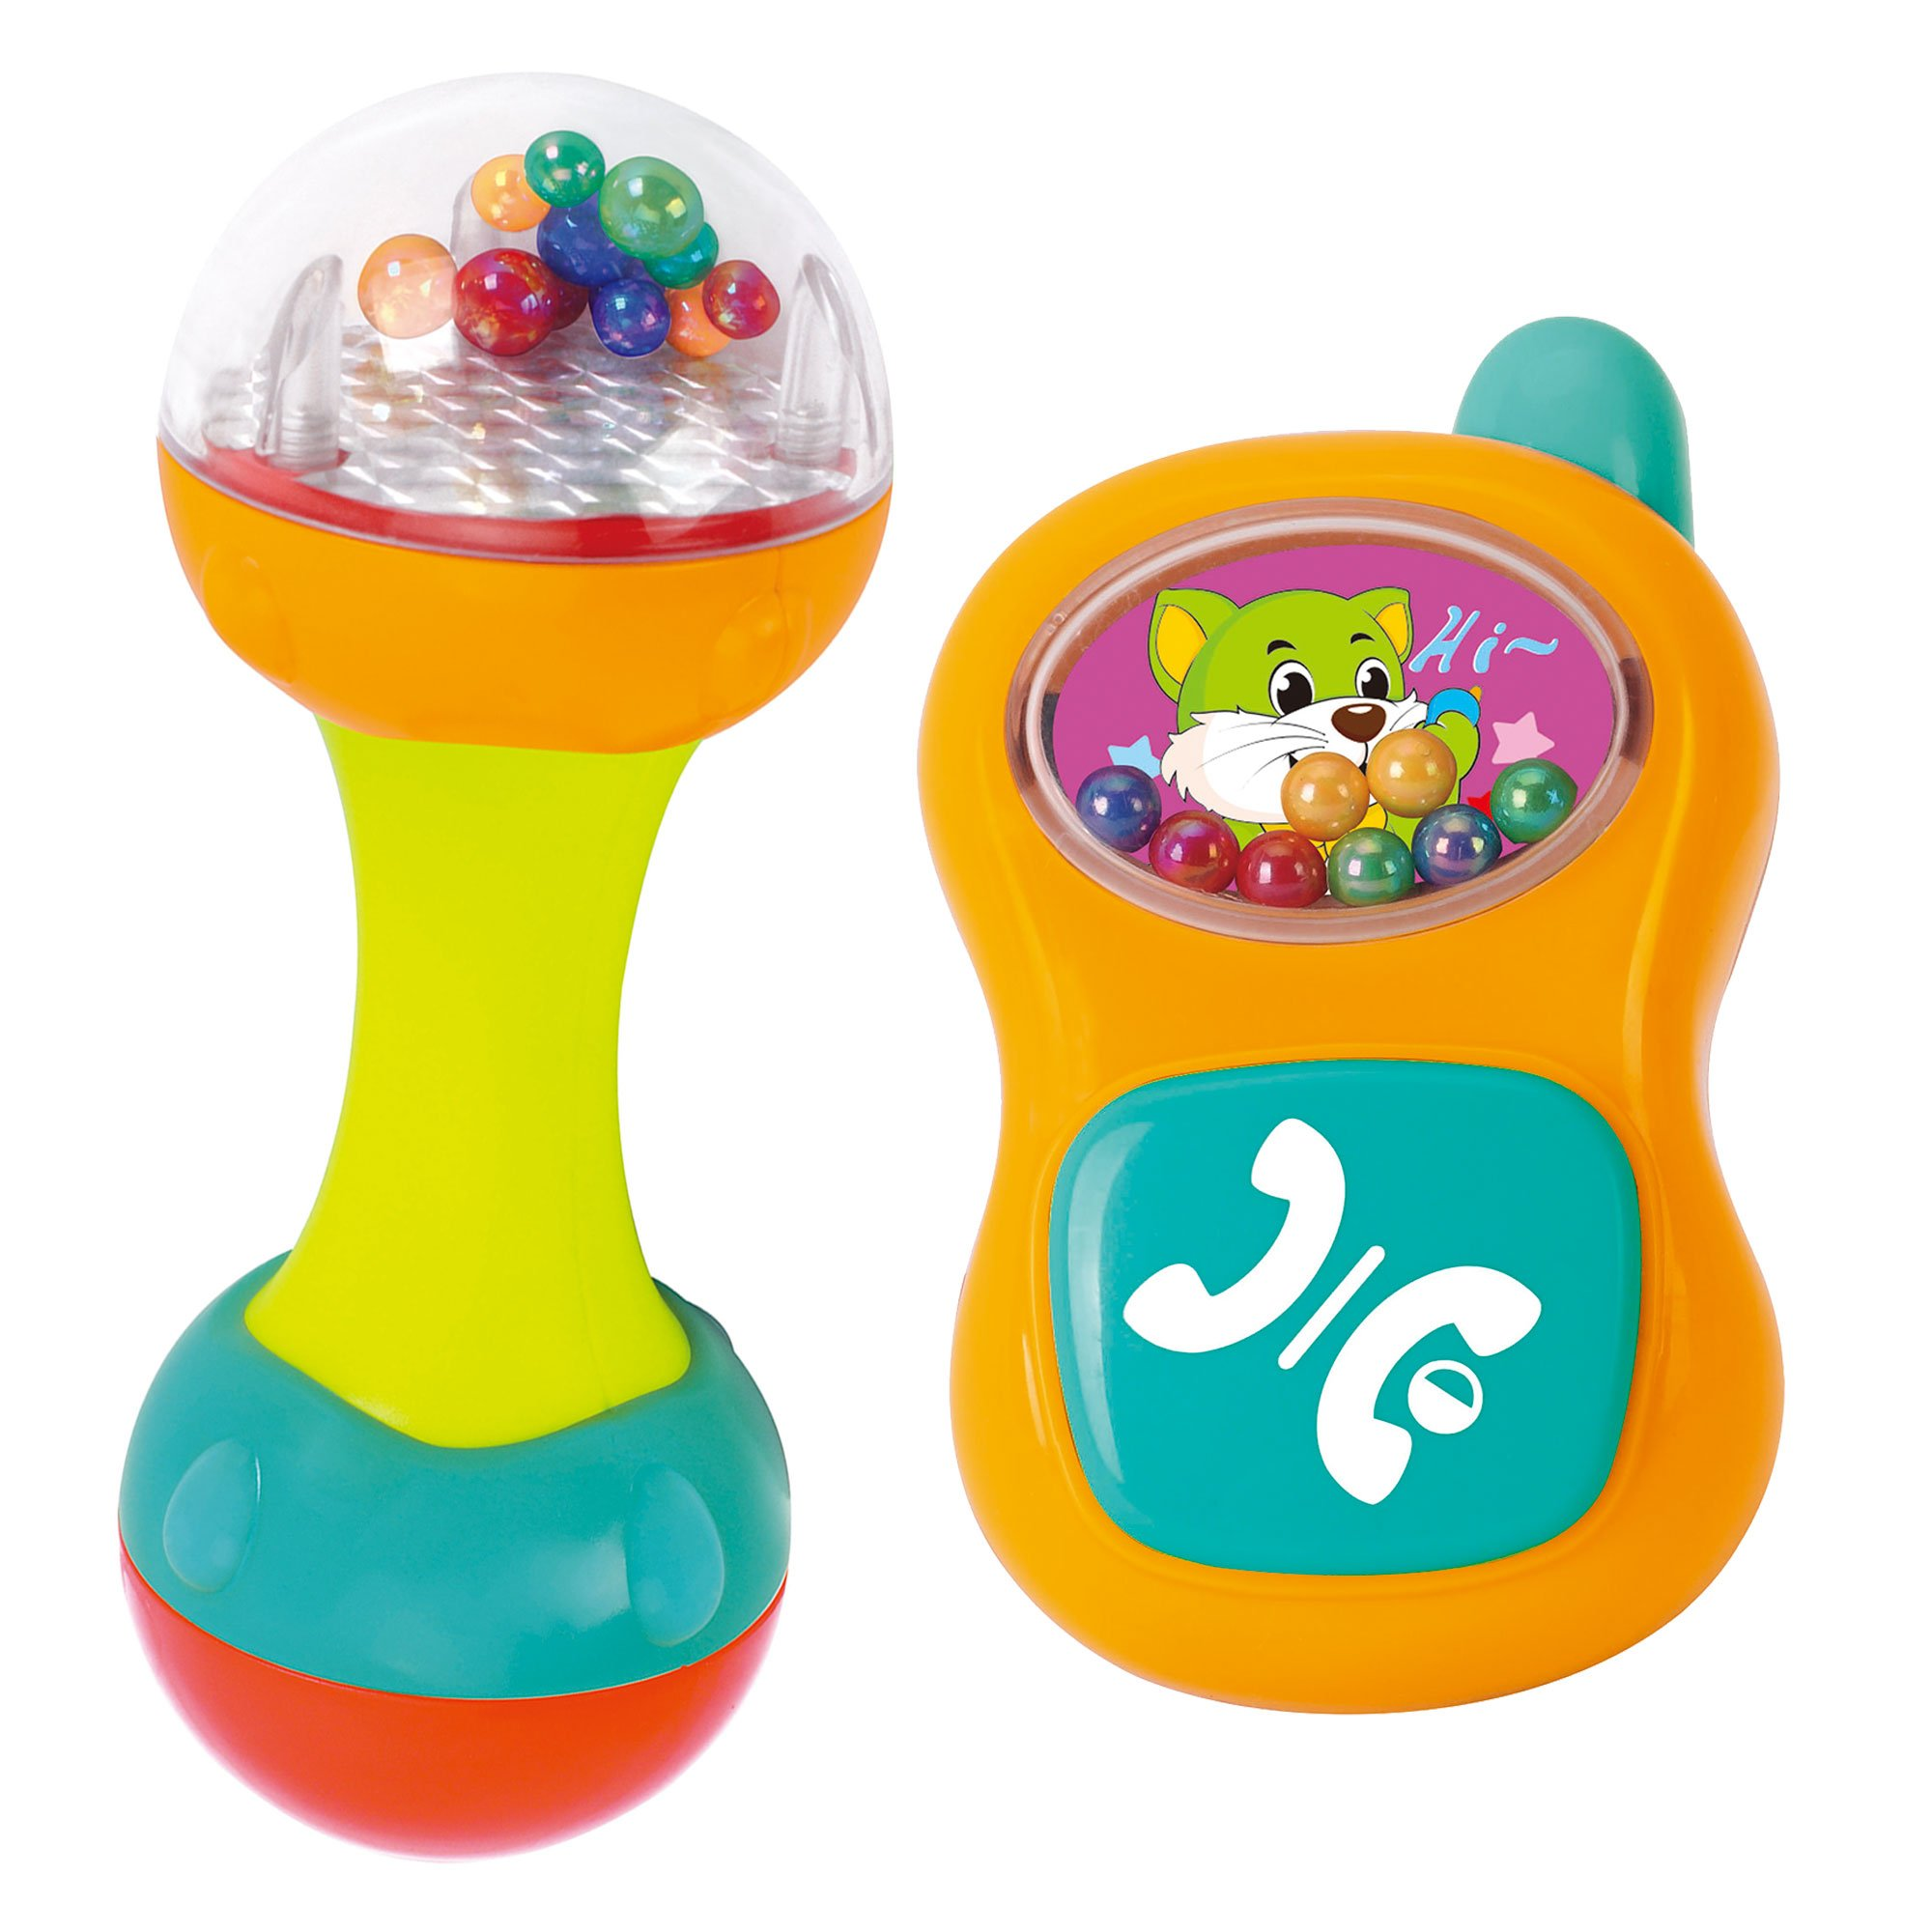 Set of Two Baby Rattles, Shaking Maraca and Baby Cell Phone for You Kids Motor Skills Development - Educational and Interactive Baby Musical Toys for Sensory Learning, Perfect for Birthday Gifts